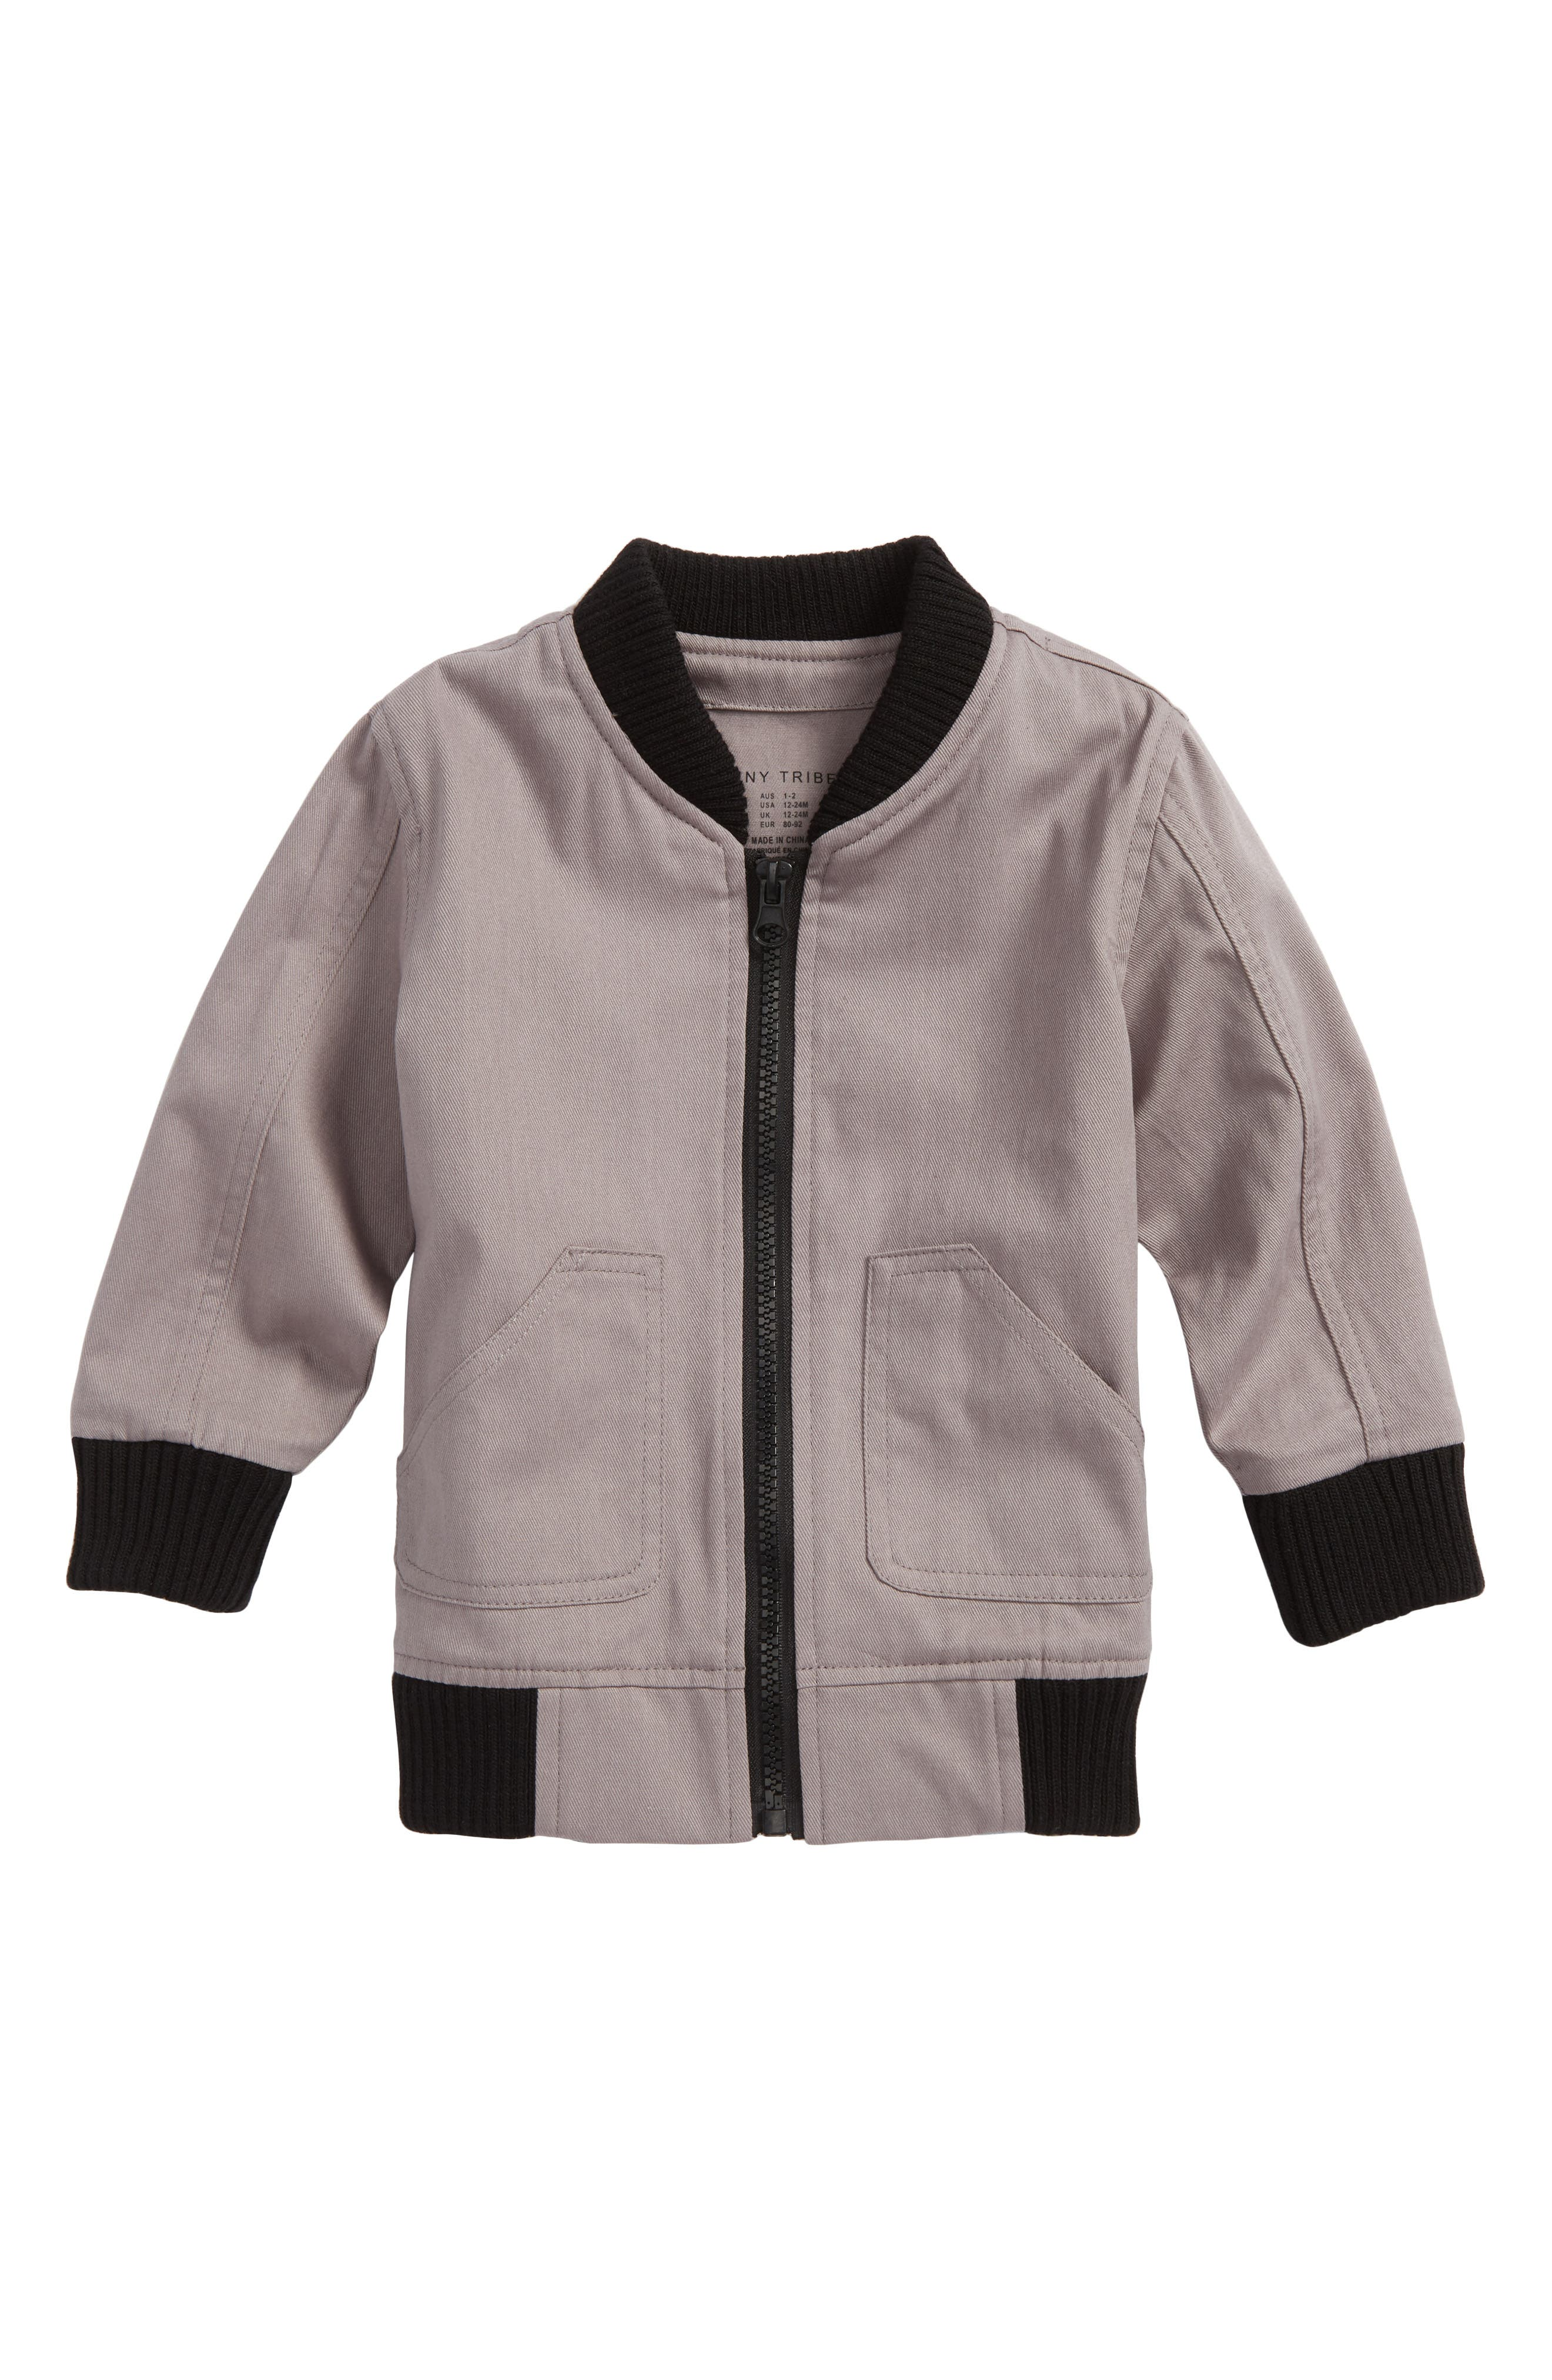 One Fine Apple Bomber Jacket,                             Main thumbnail 1, color,                             Grey